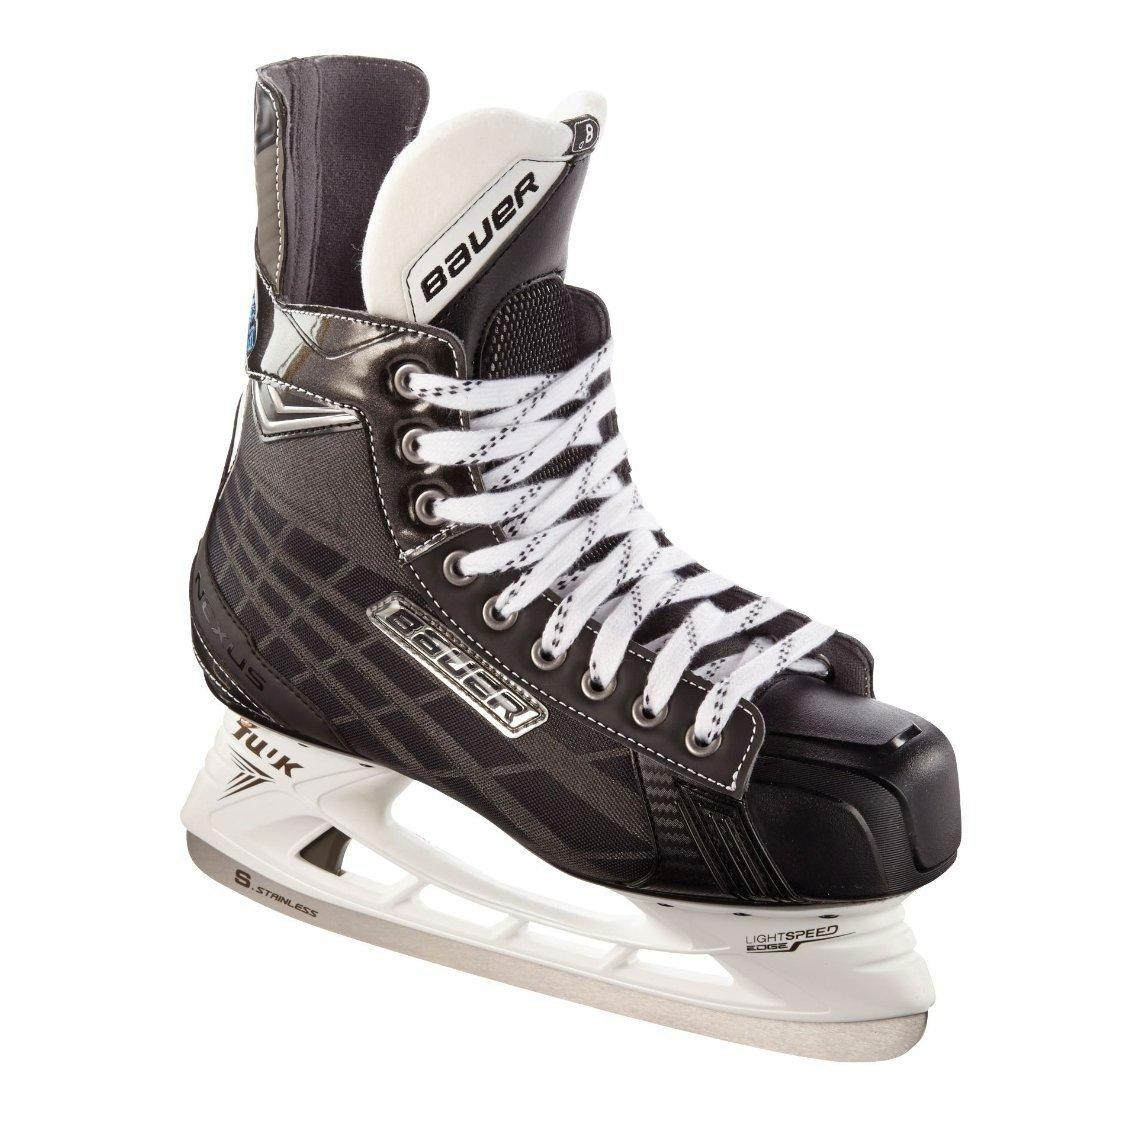 Nexus 88 Skate Junior S14